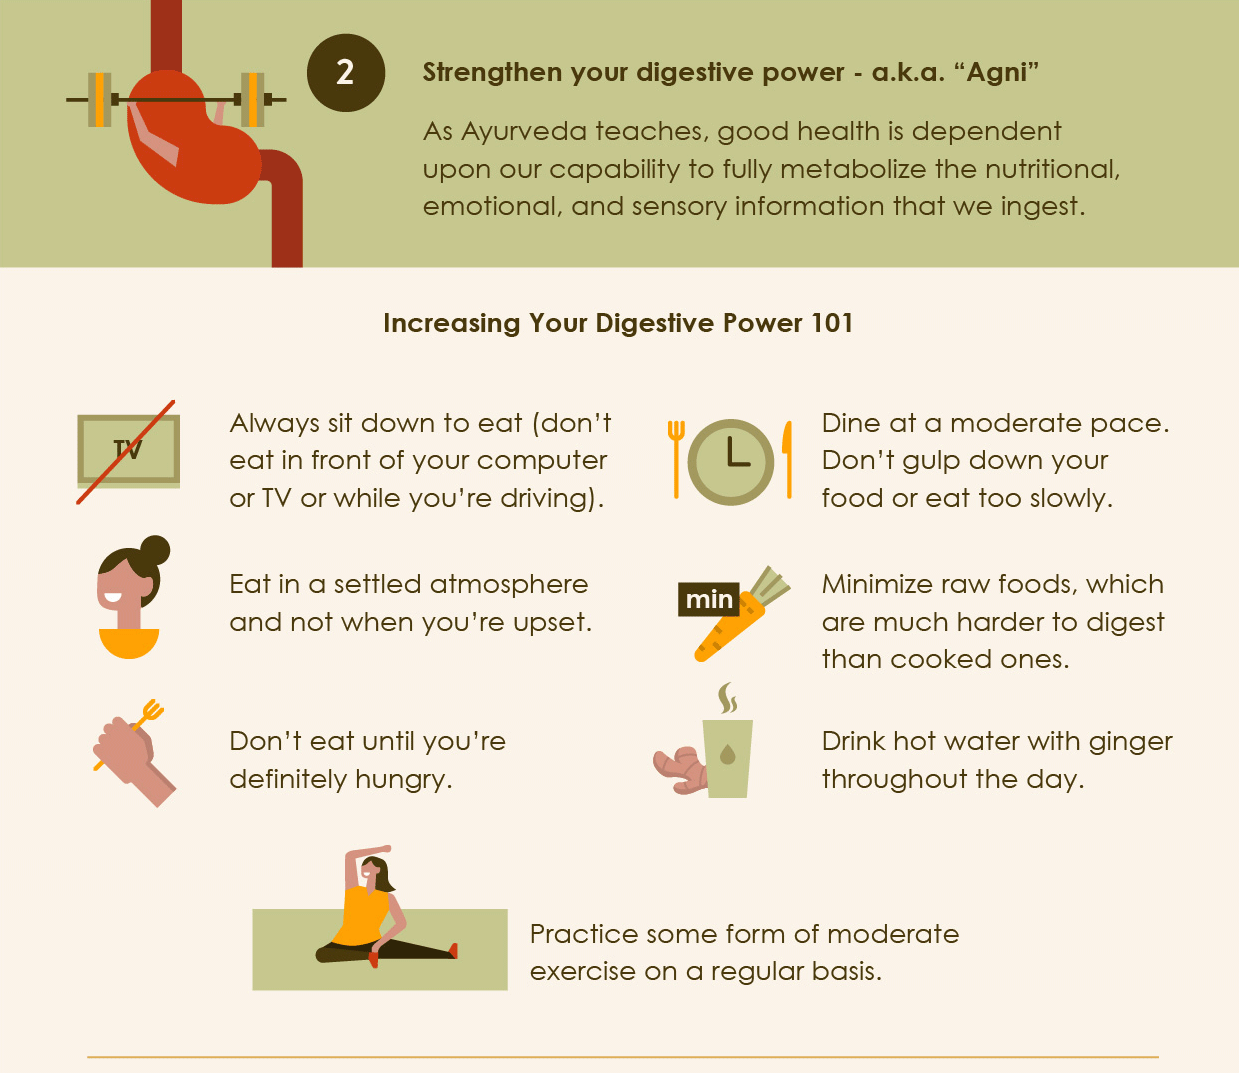 Increasing Your Digestive Power